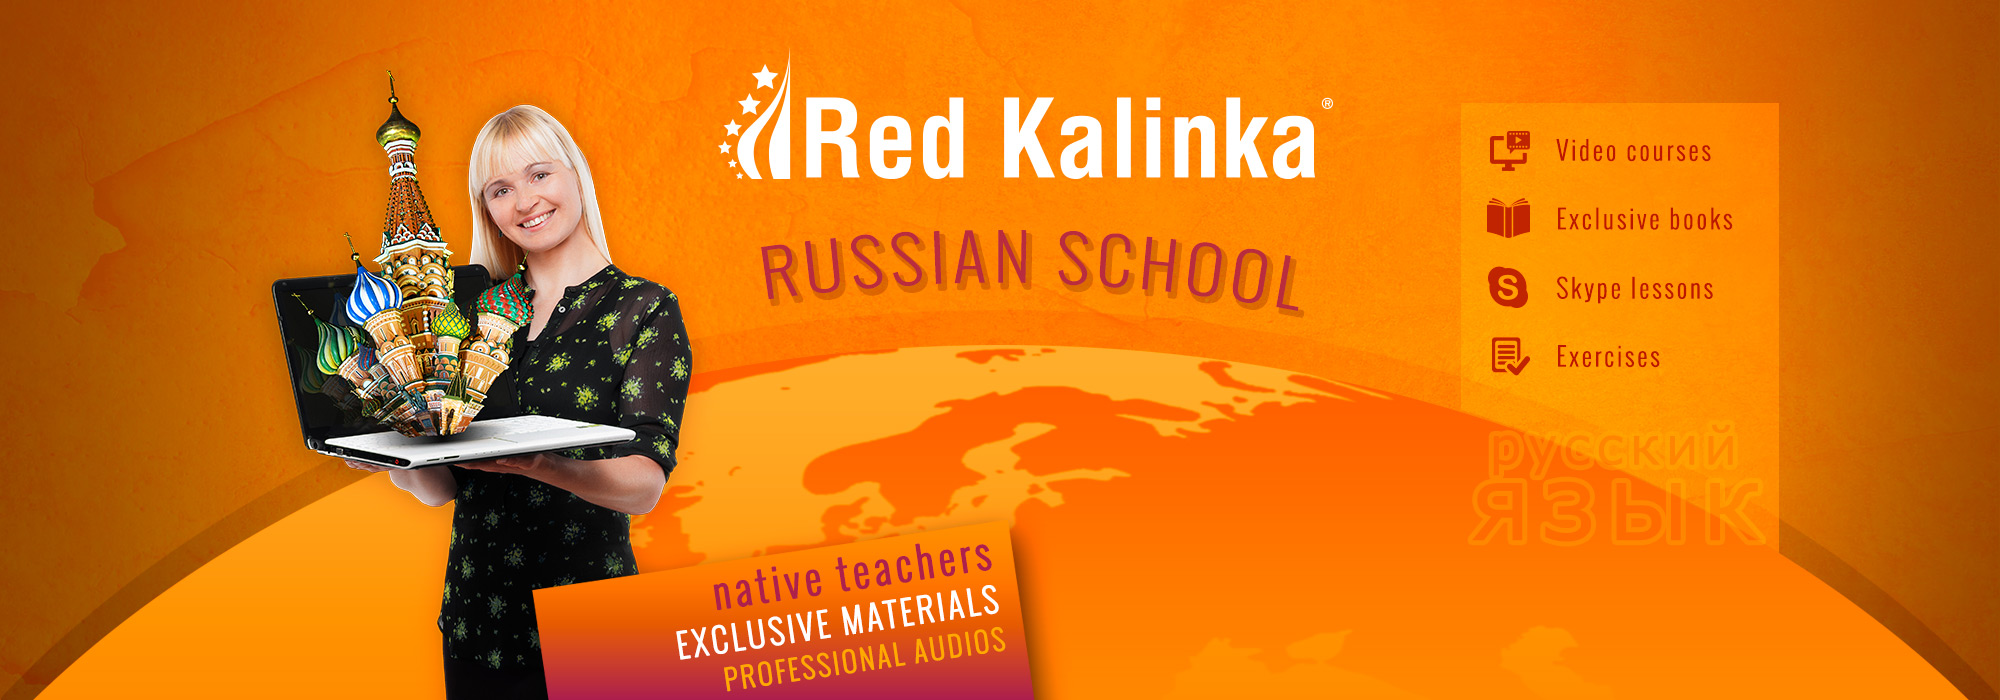 Red Kalinka: Russian school